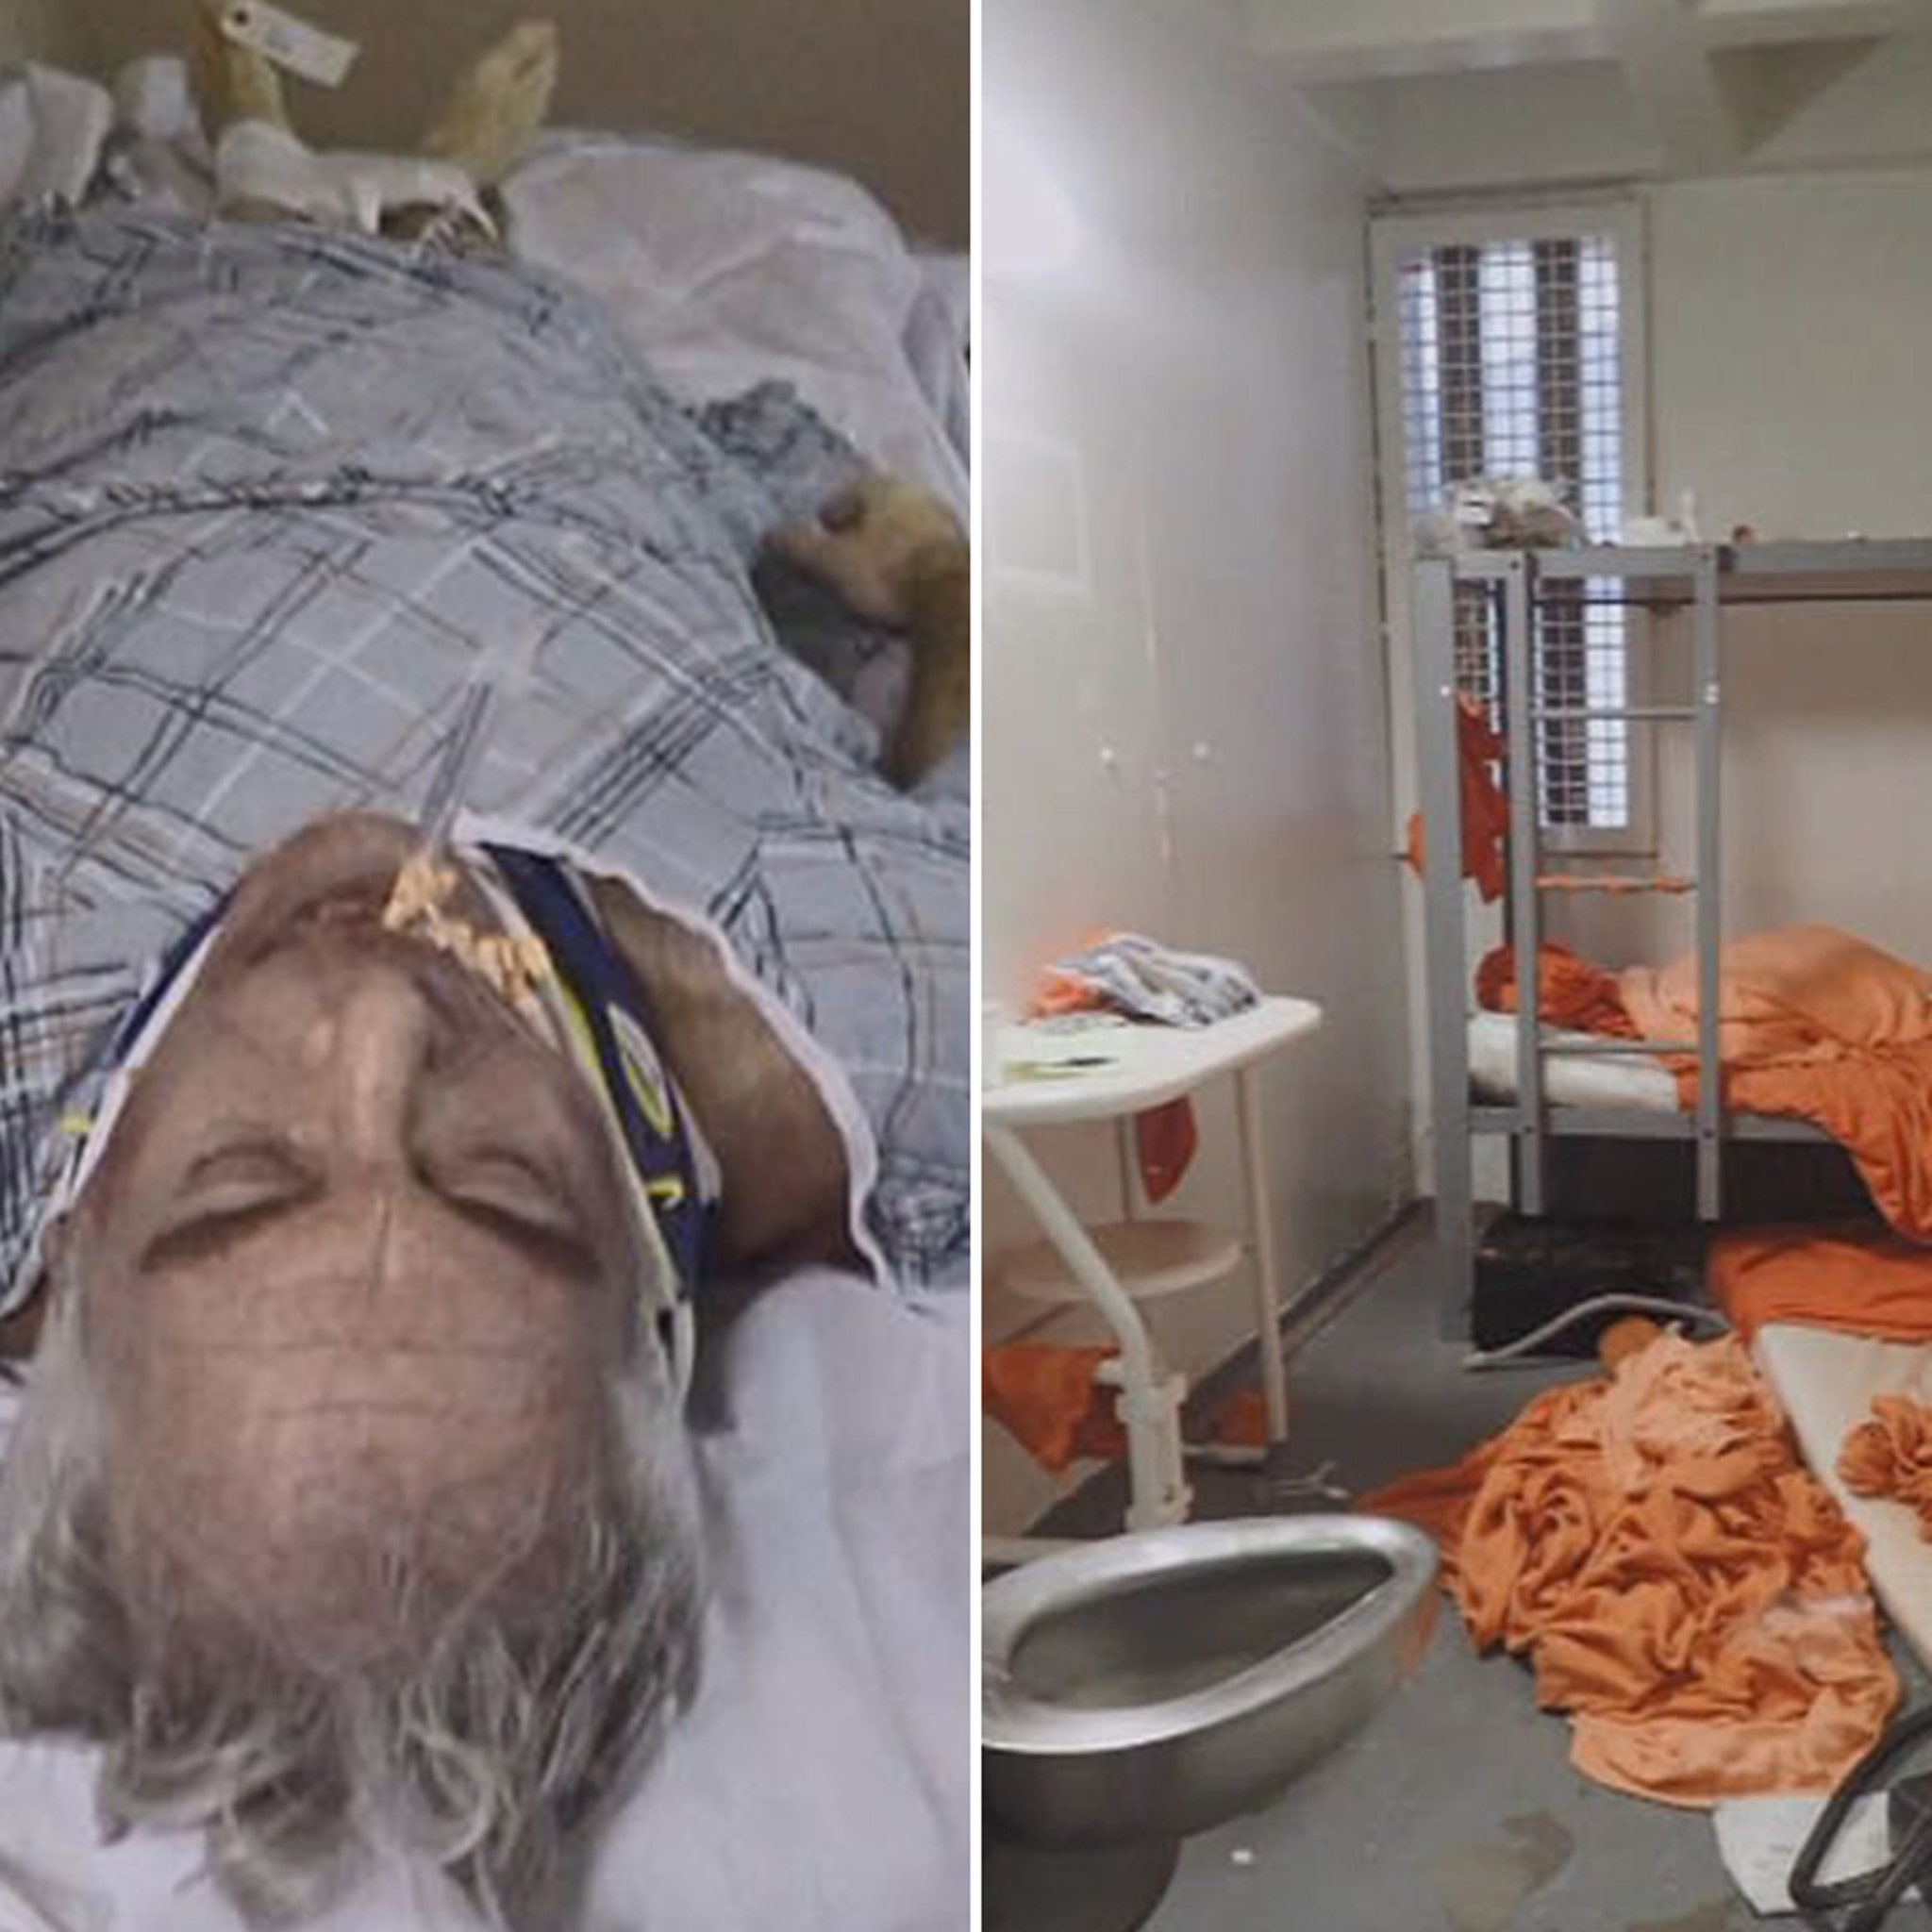 Jeffrey Epstein's Gruesome Autopsy Photos, More Suicide Questions Raised